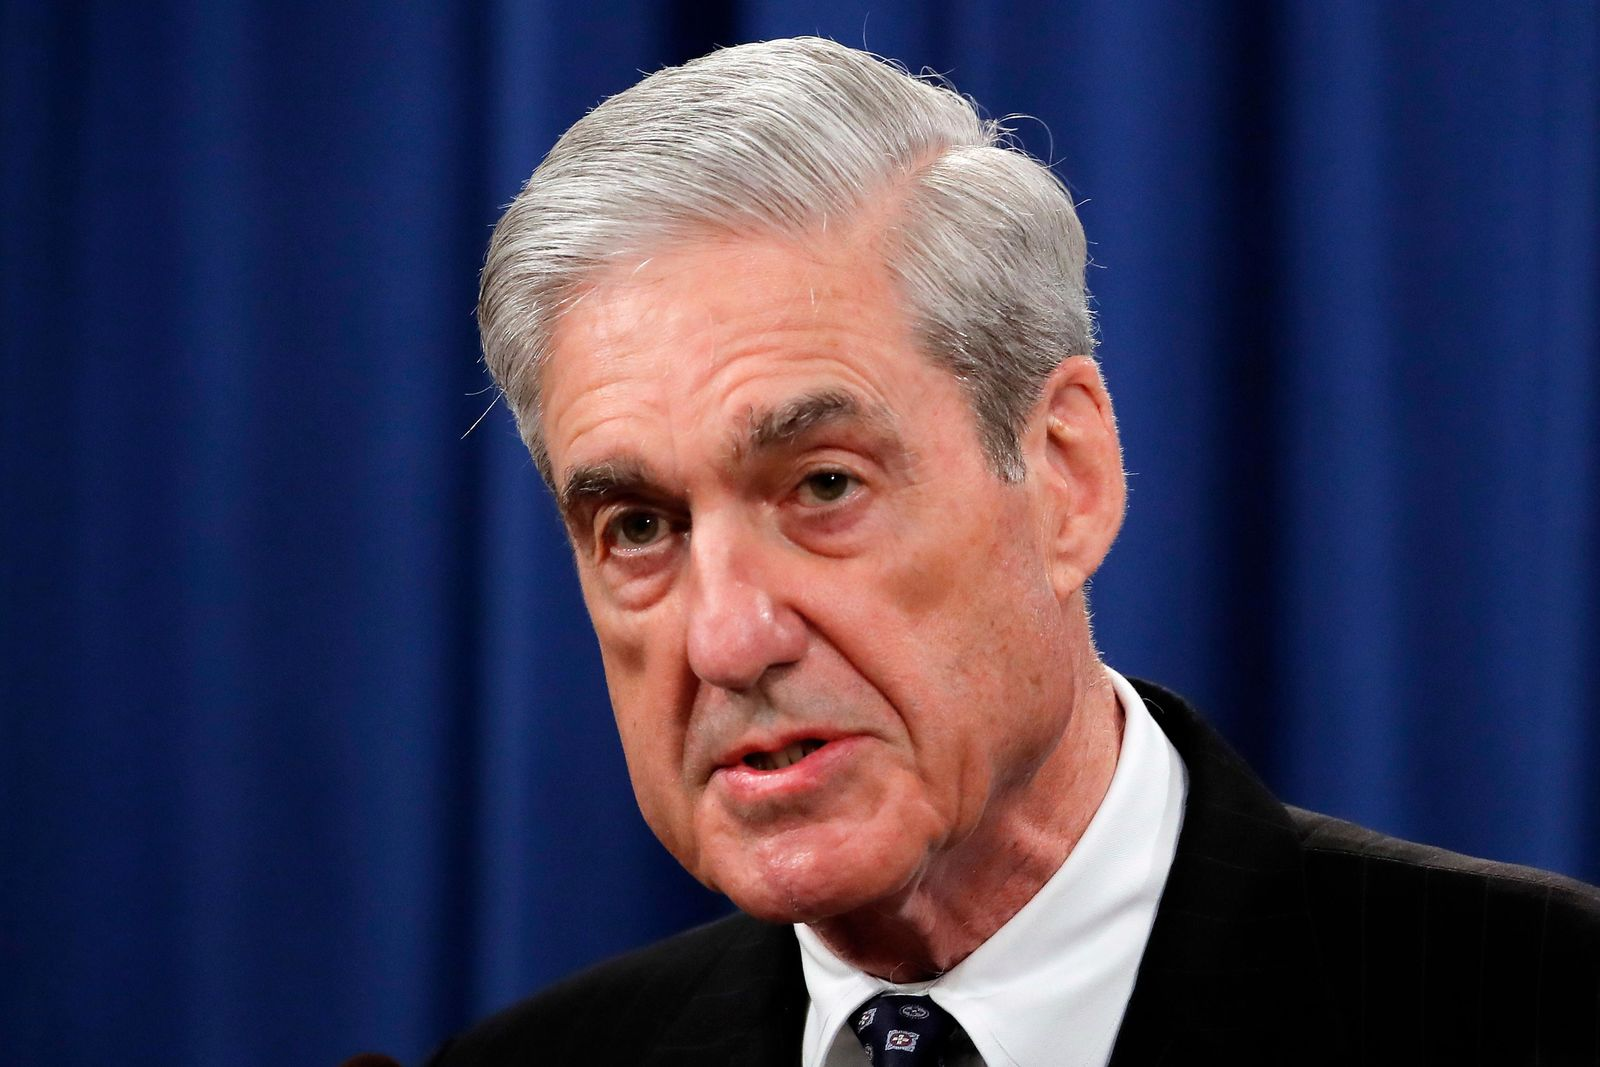 FILE - In this May 29, 2019, file photo, Special counsel Robert Mueller speaks at the Department of Justice in Washington, about the Russia investigation.{ } (AP Photo/Carolyn Kaster, File)